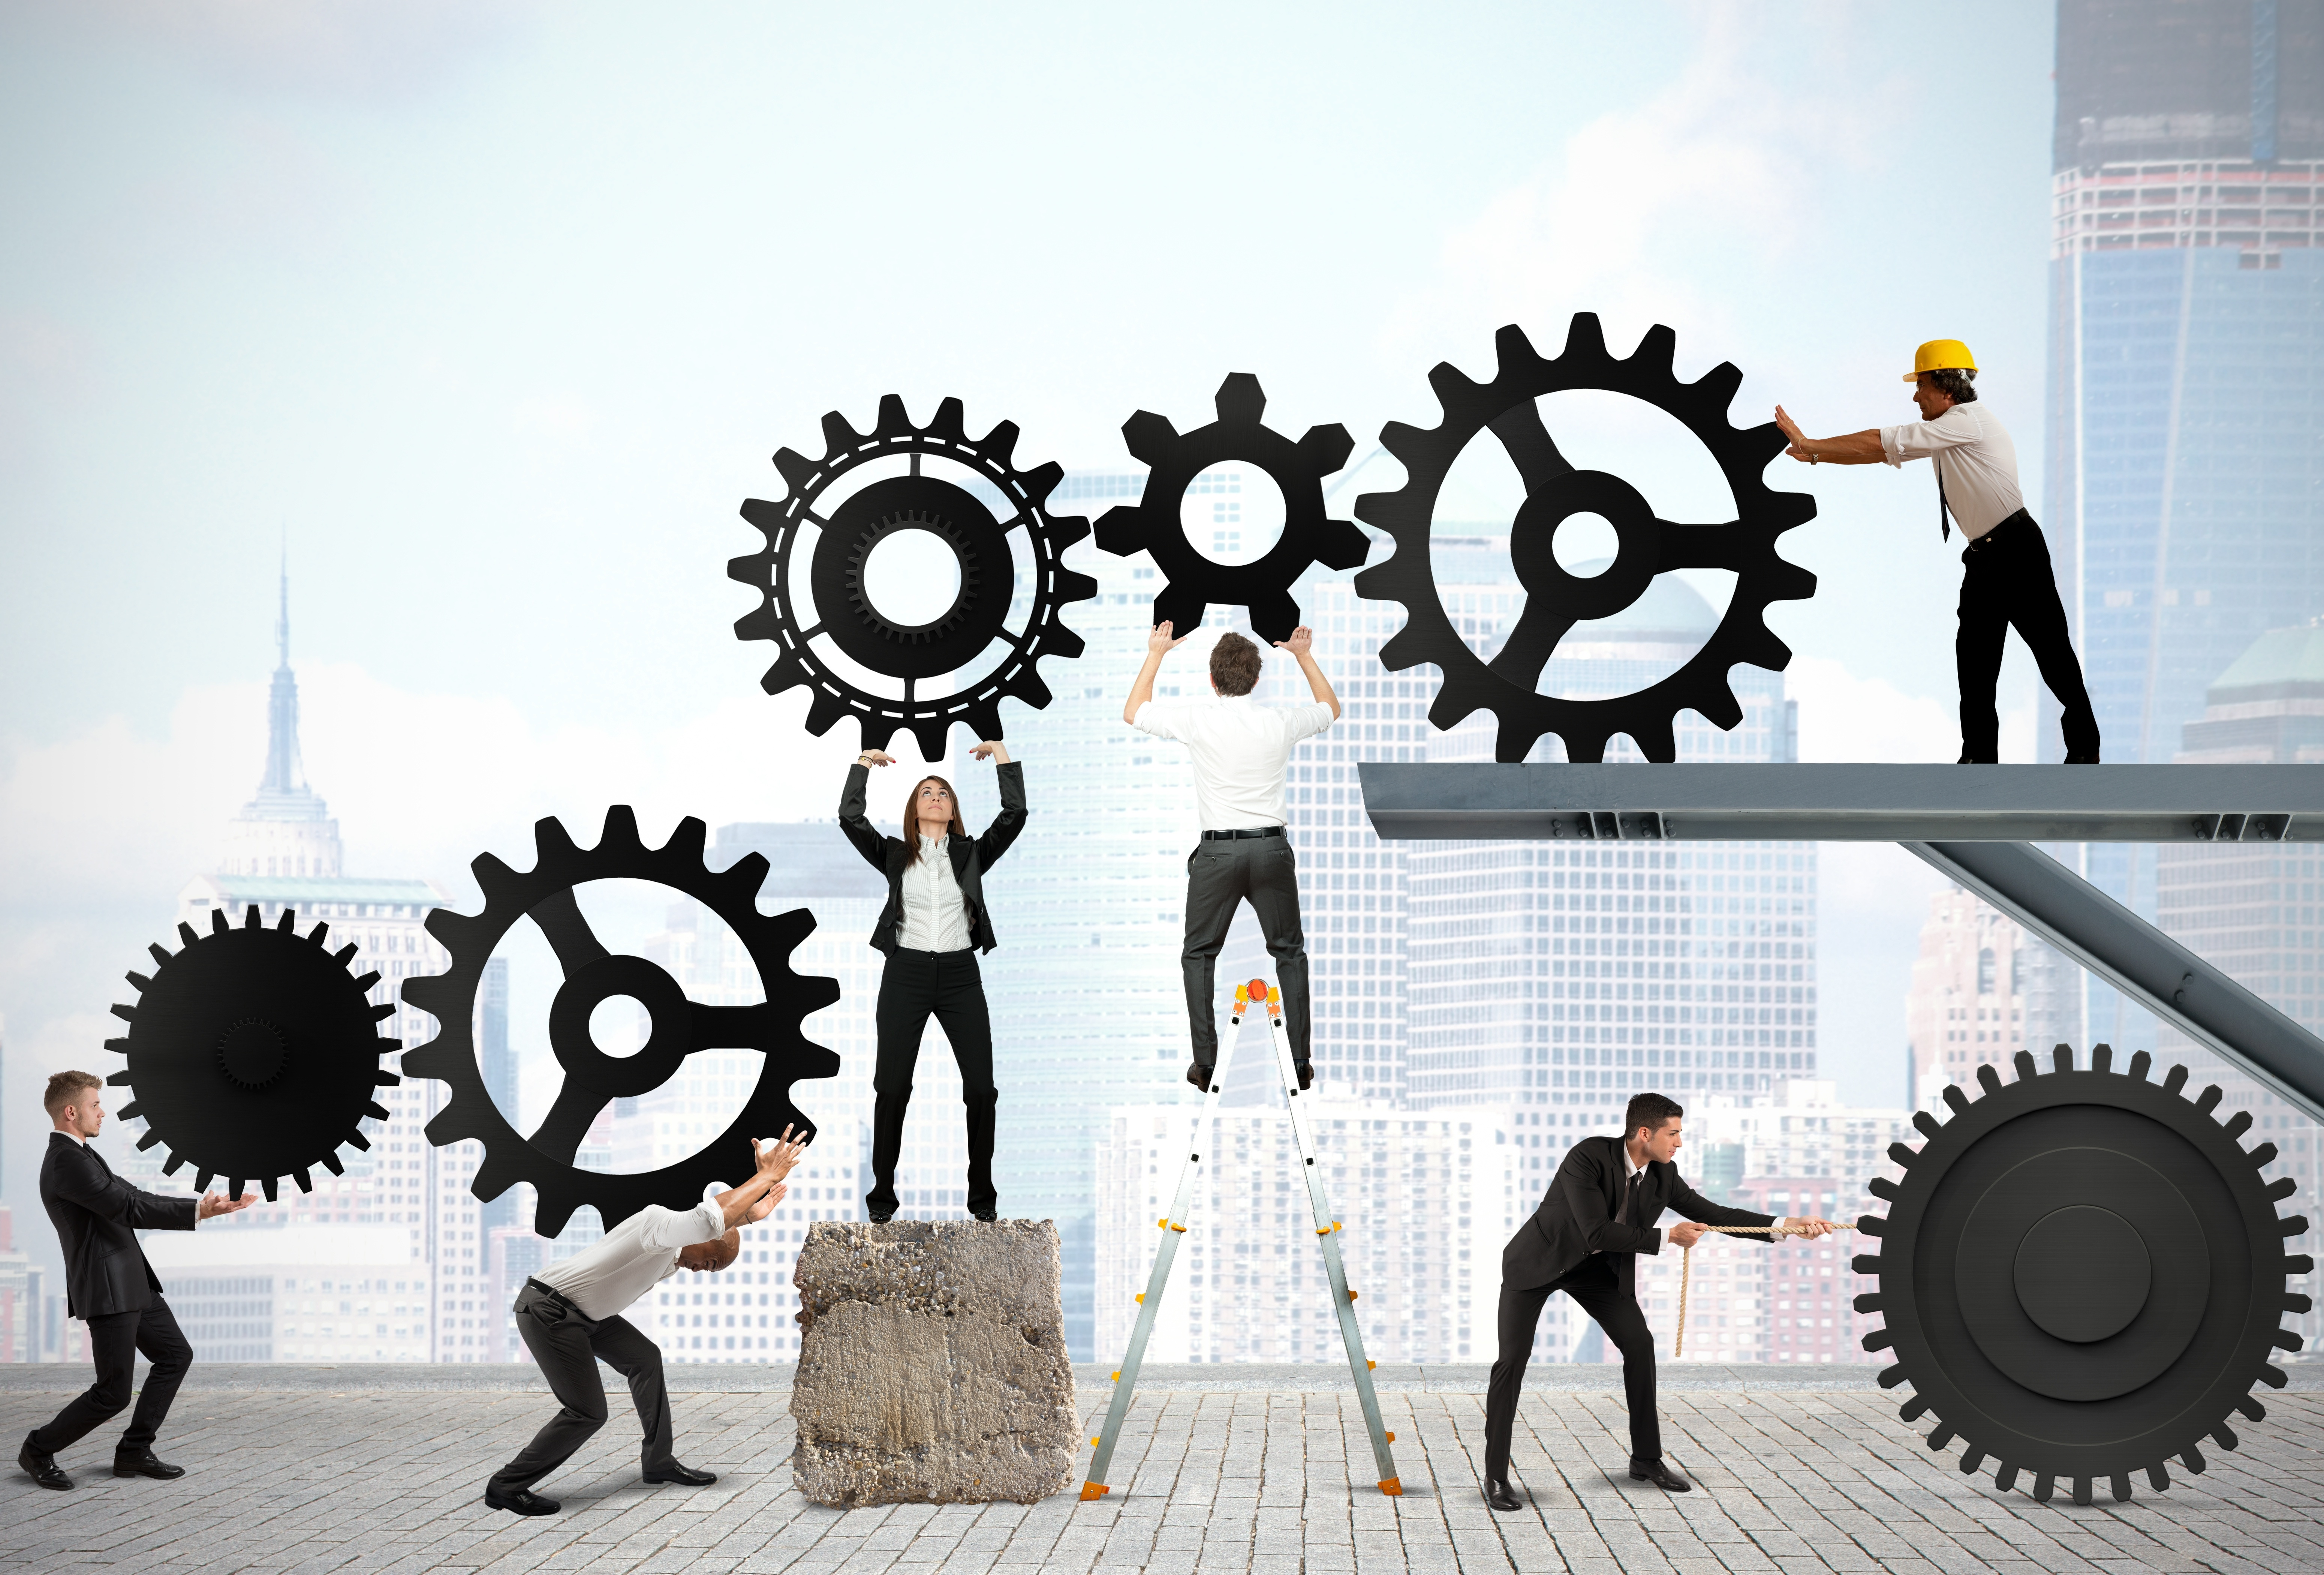 bigstock-Teamwork-Of-Businesspeople-48286511.jpg